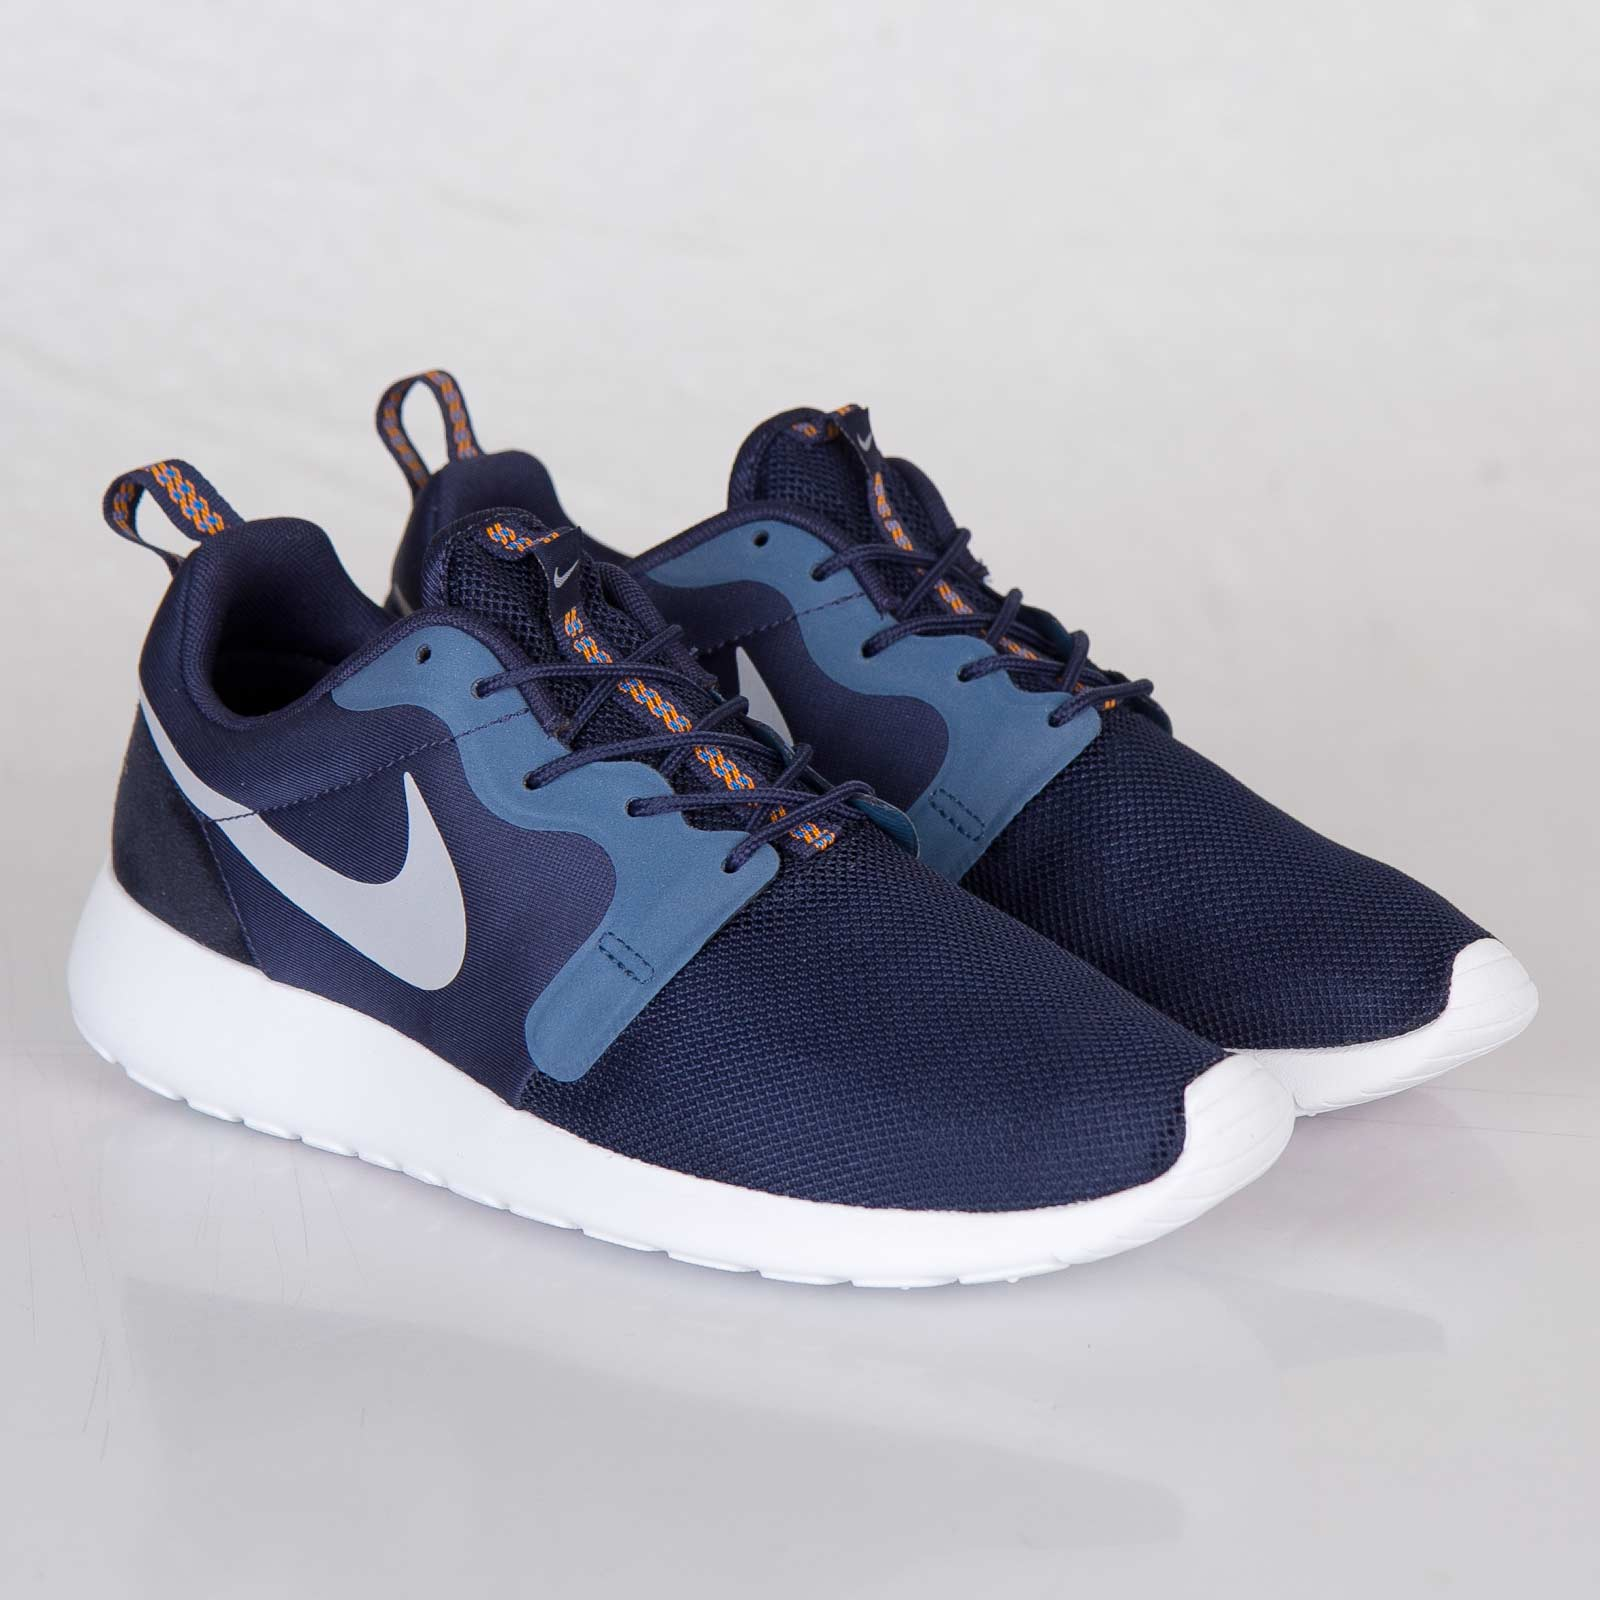 08e641f8982b Nike Roshe Run Hyperfuse - 636220-400 - Sneakersnstuff